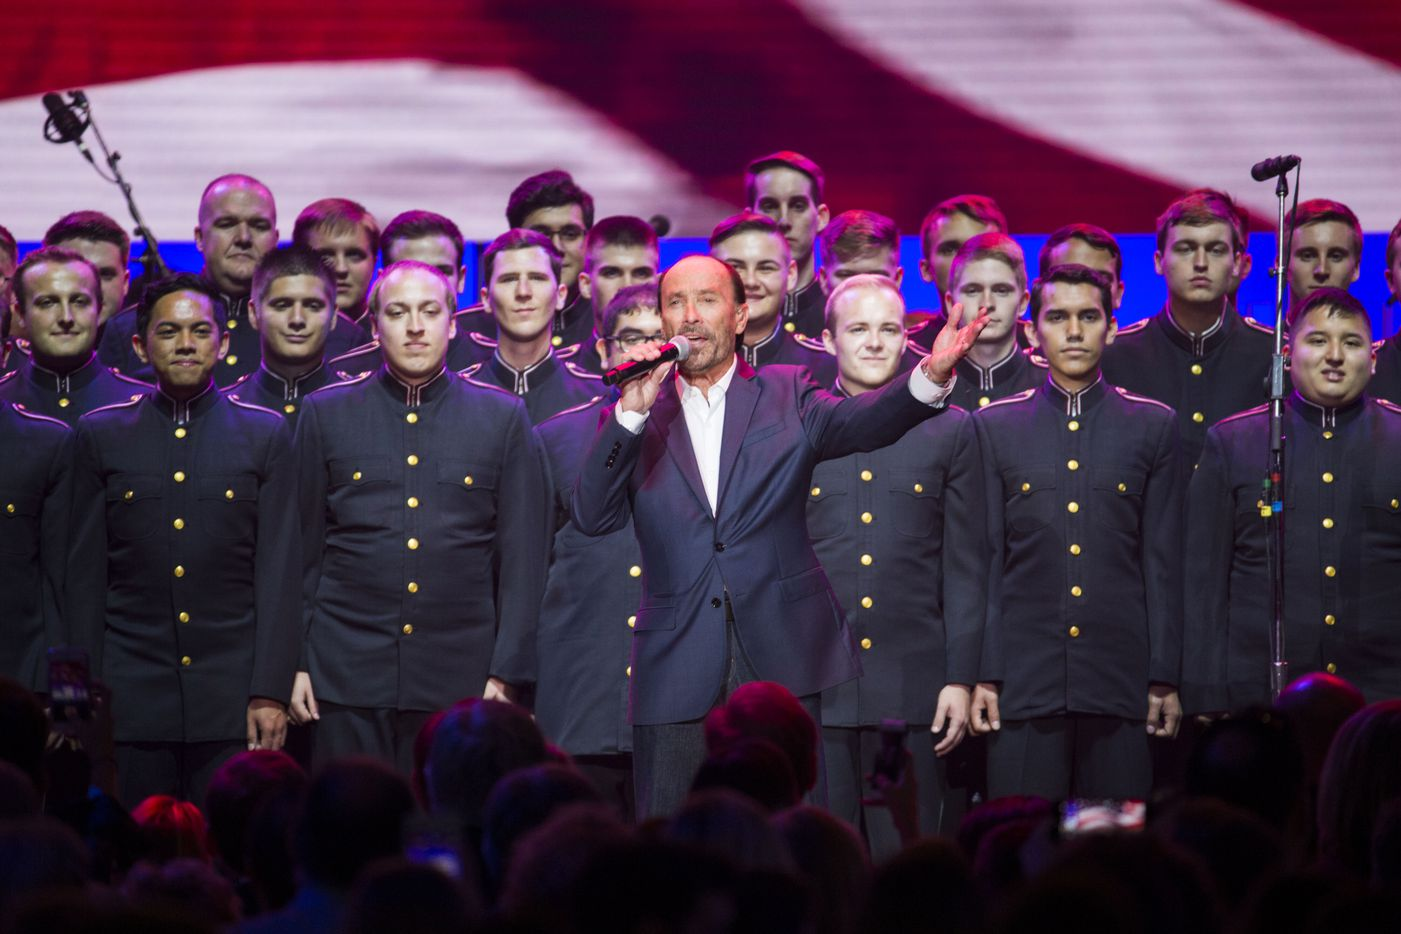 """Lee Greenwood sings """"I'm Proud to be an American"""" on Saturday, October 21, 2017 at Reed Arena on the Texas A&M University campus in College Station, Texas."""